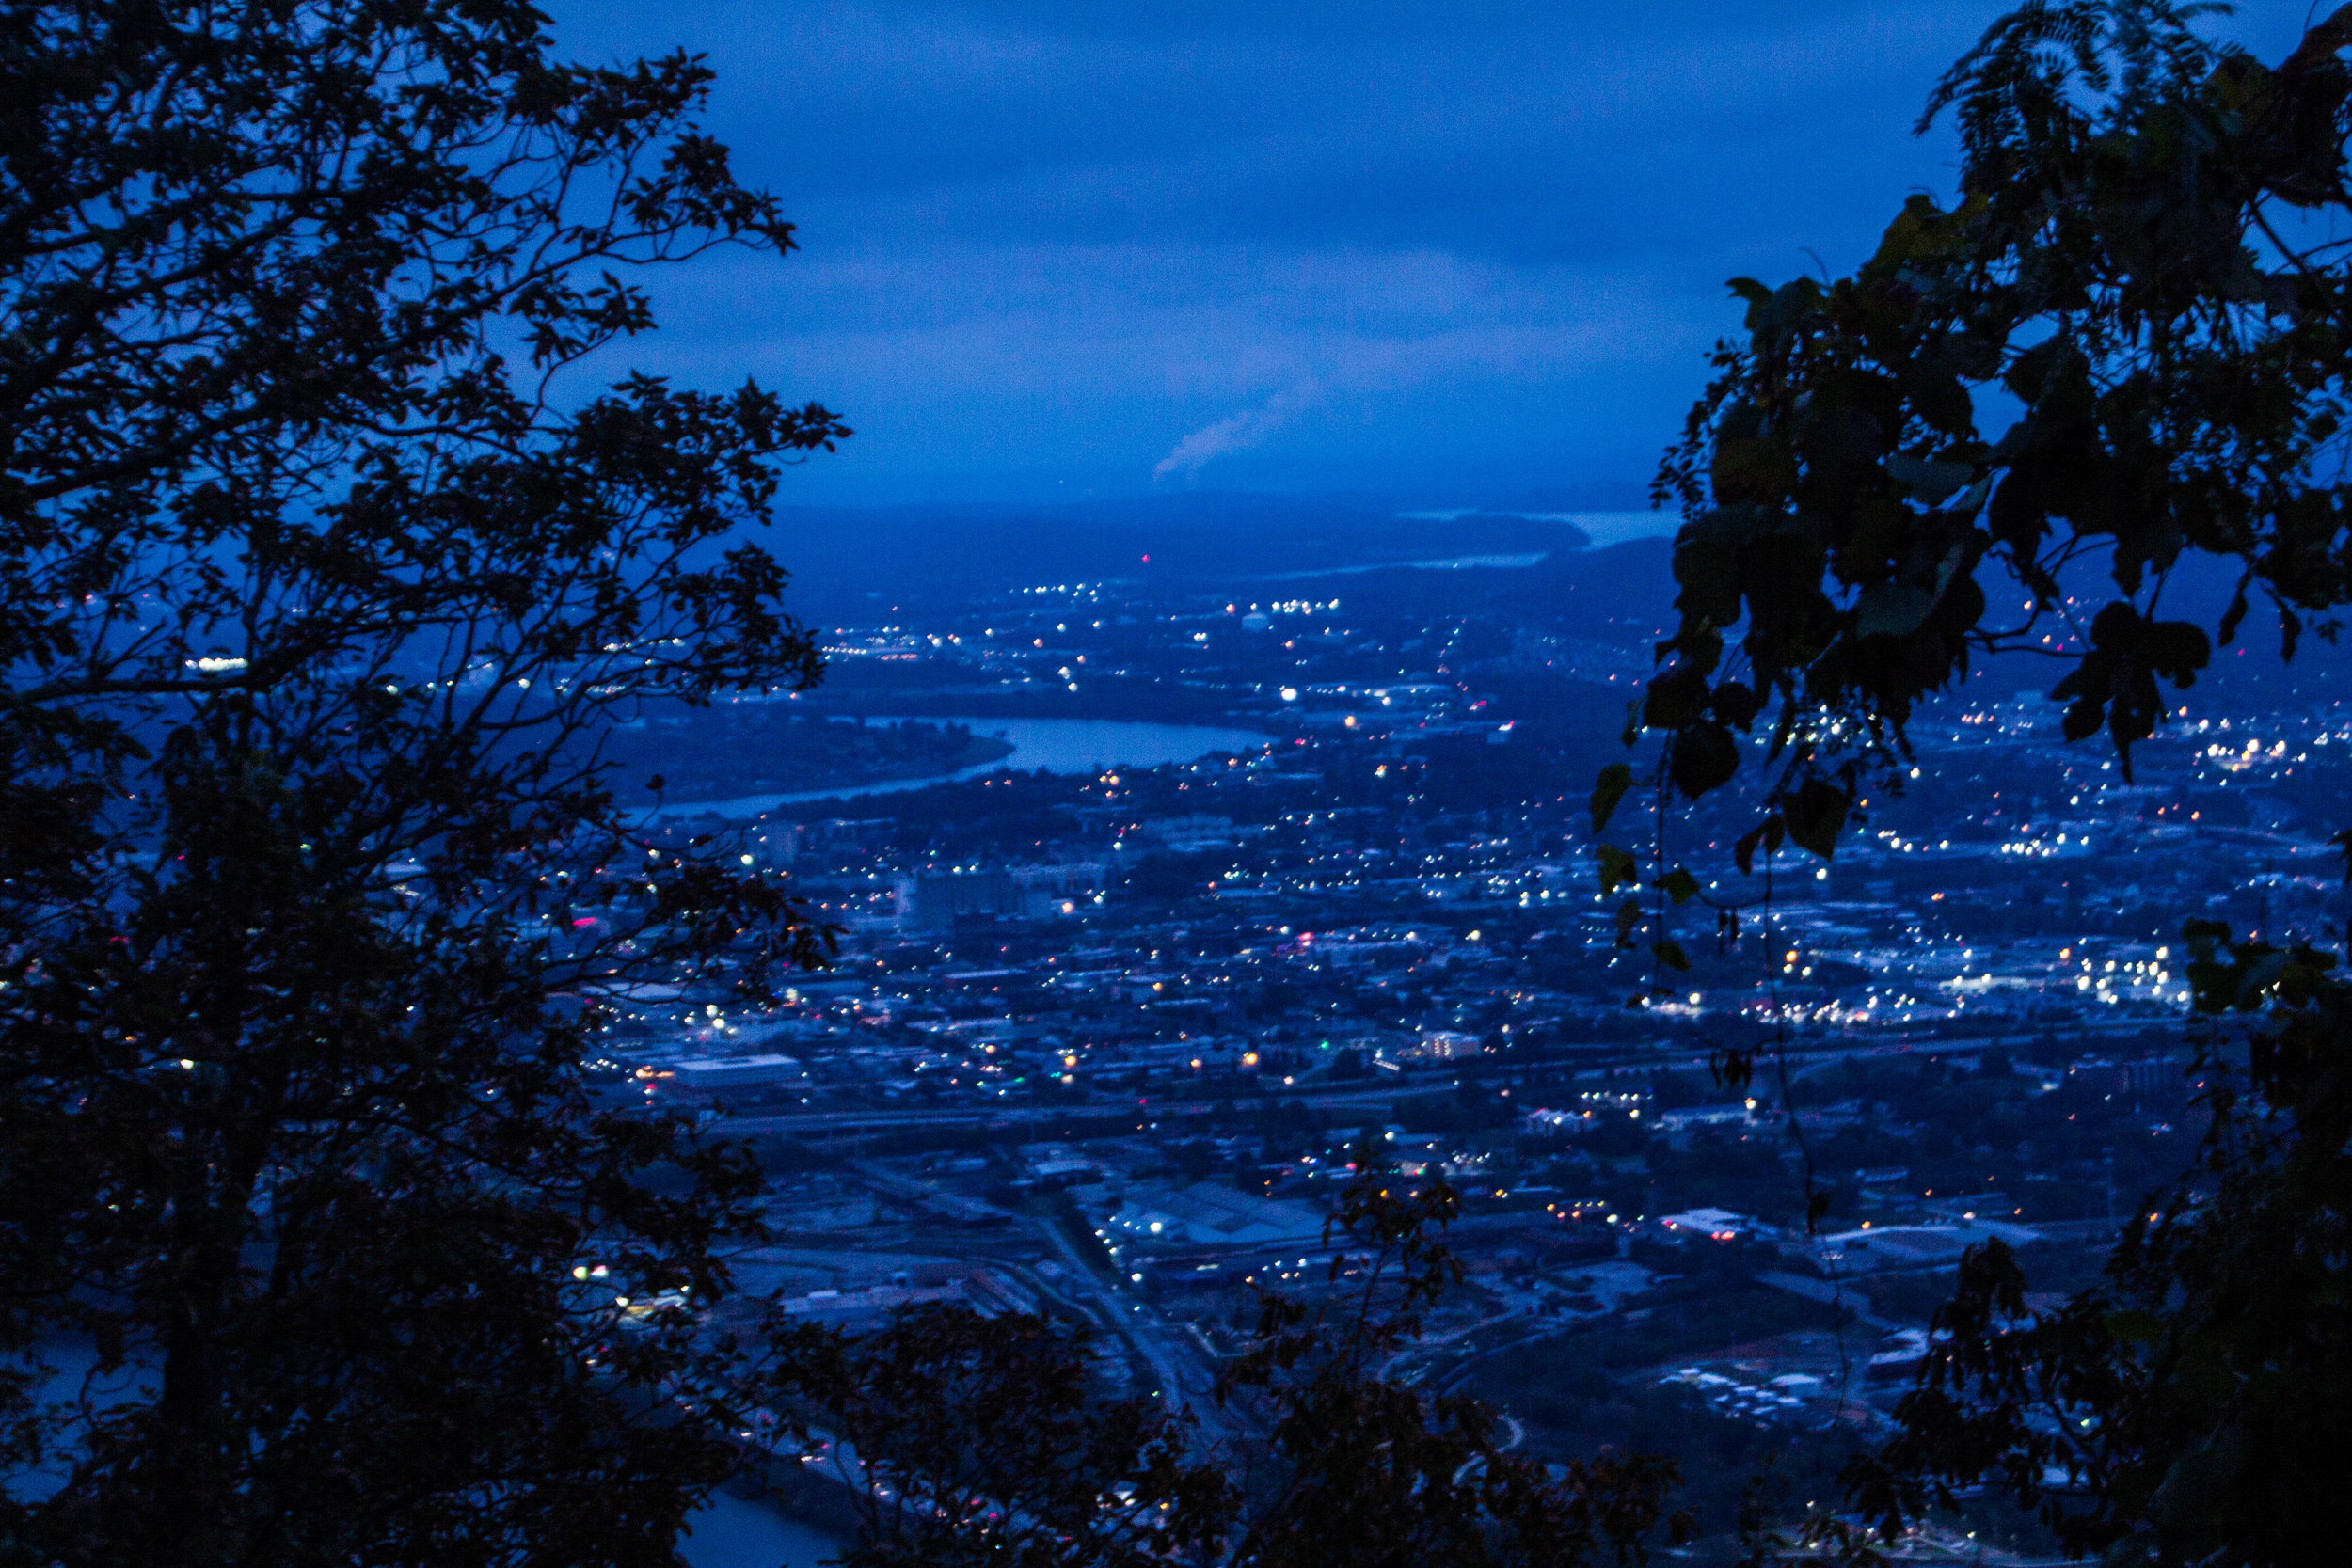 point-park-lookout-mountain-chattanooga-at-night-3.jpg